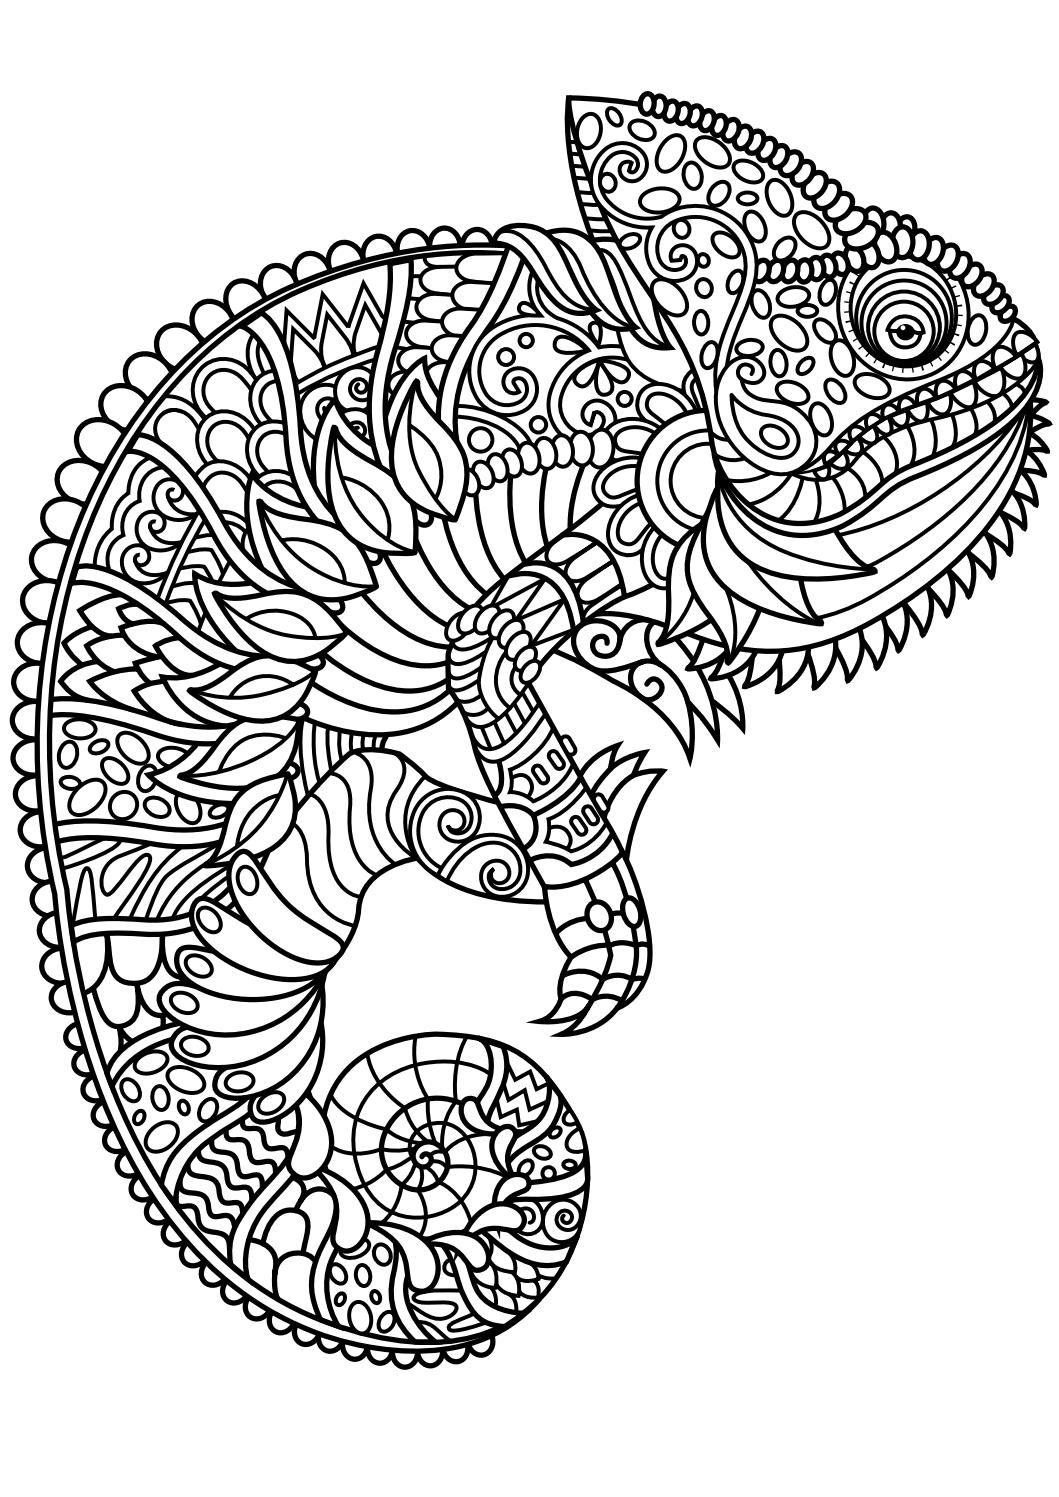 It's just an image of Juicy Adult Coloring Book Pdf